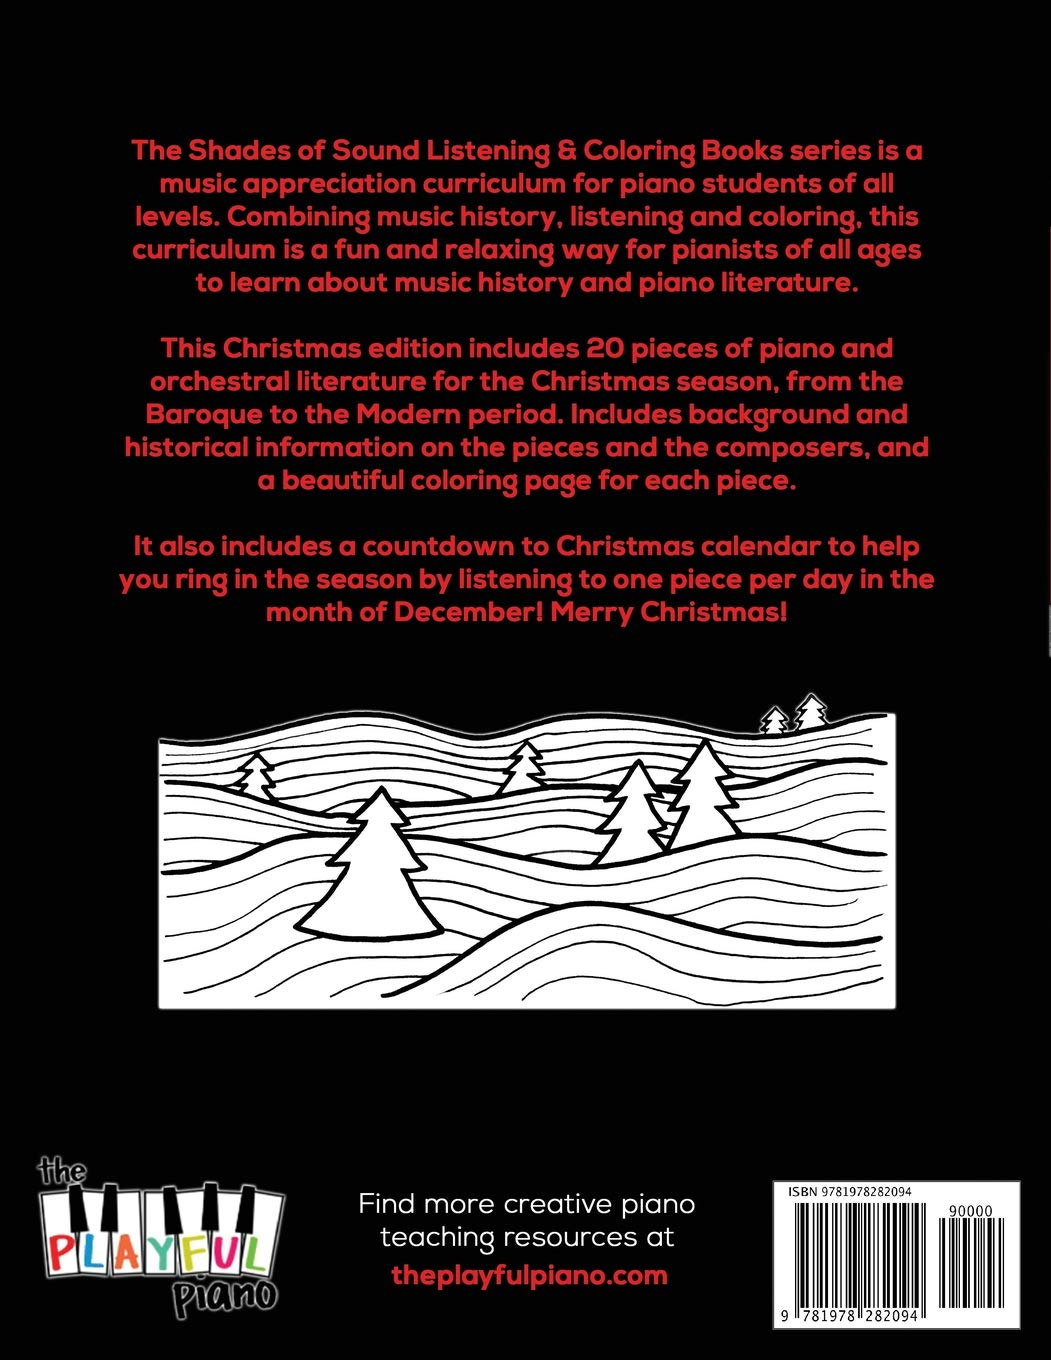 Christmas Shades of Sound: A Listening & Coloring Book for Pianists